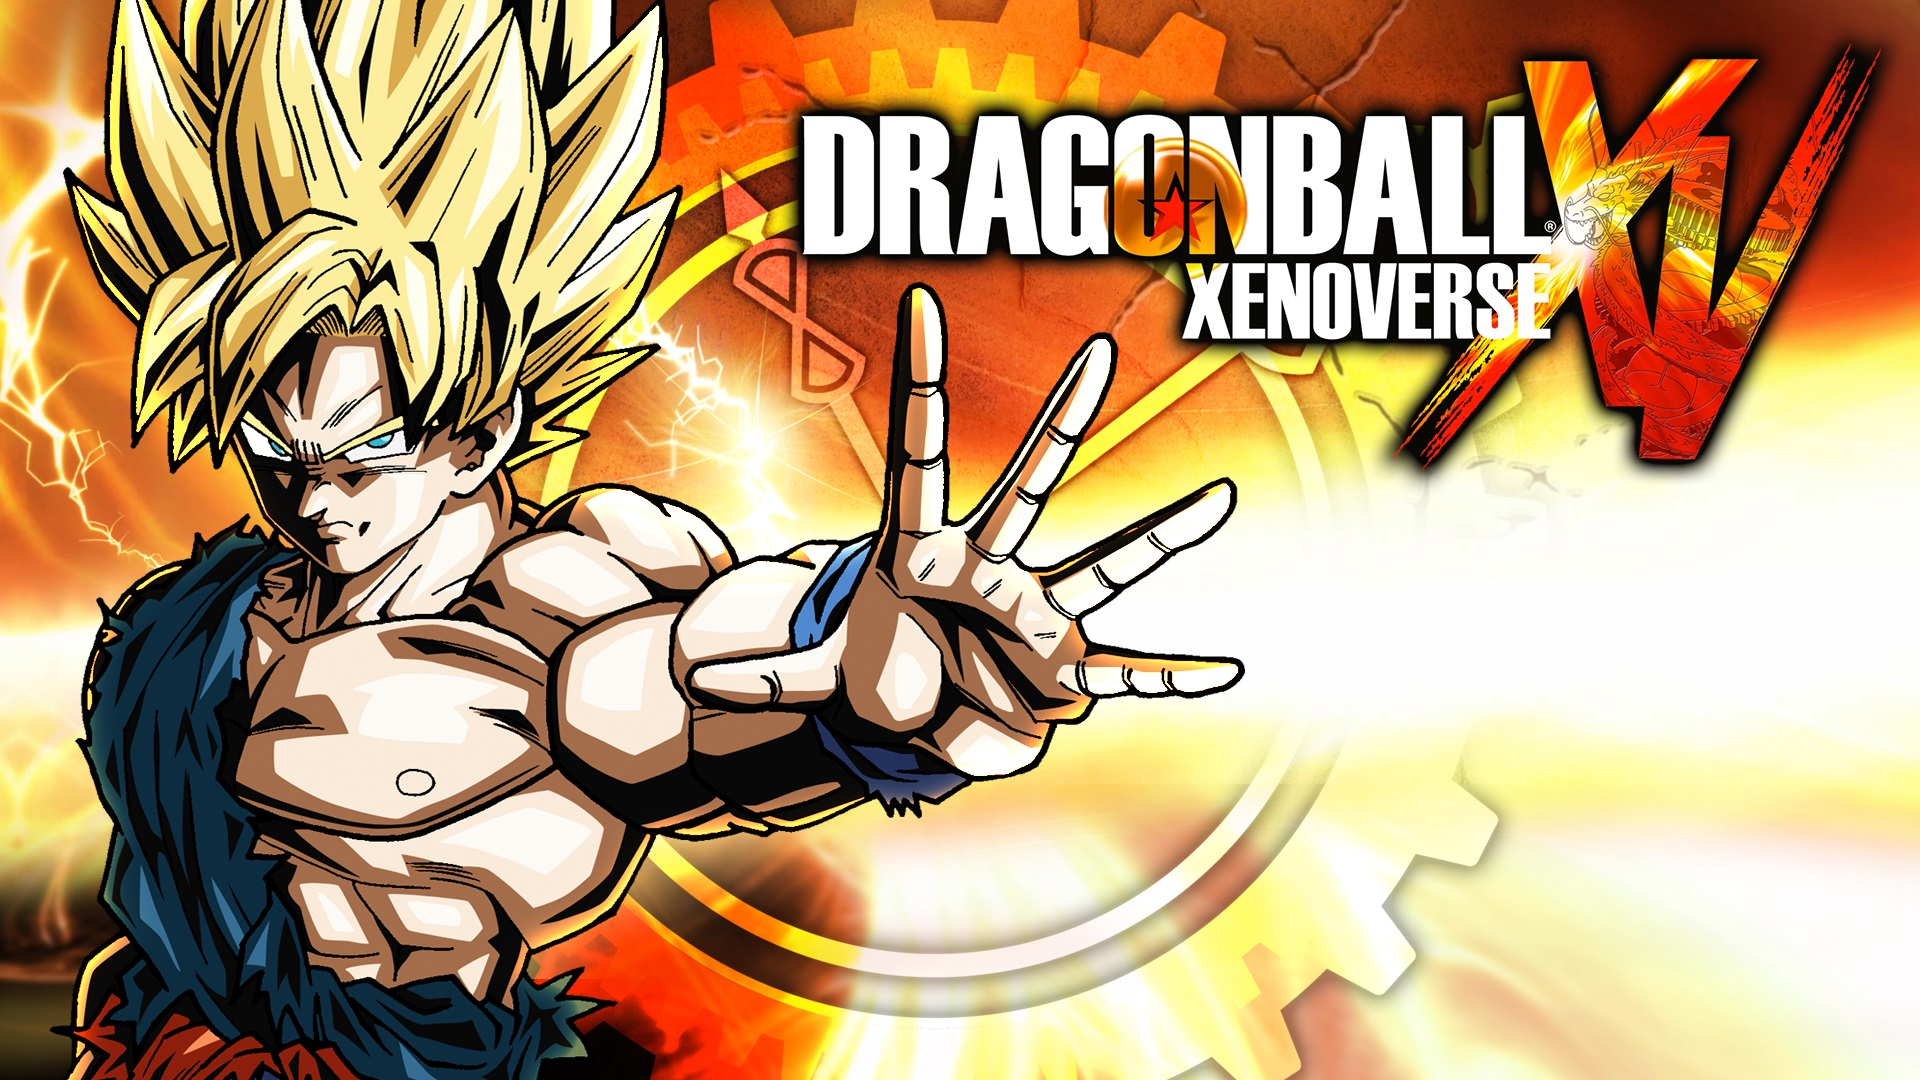 Descargar Dragonball Xenoverse Mega Y Torrent